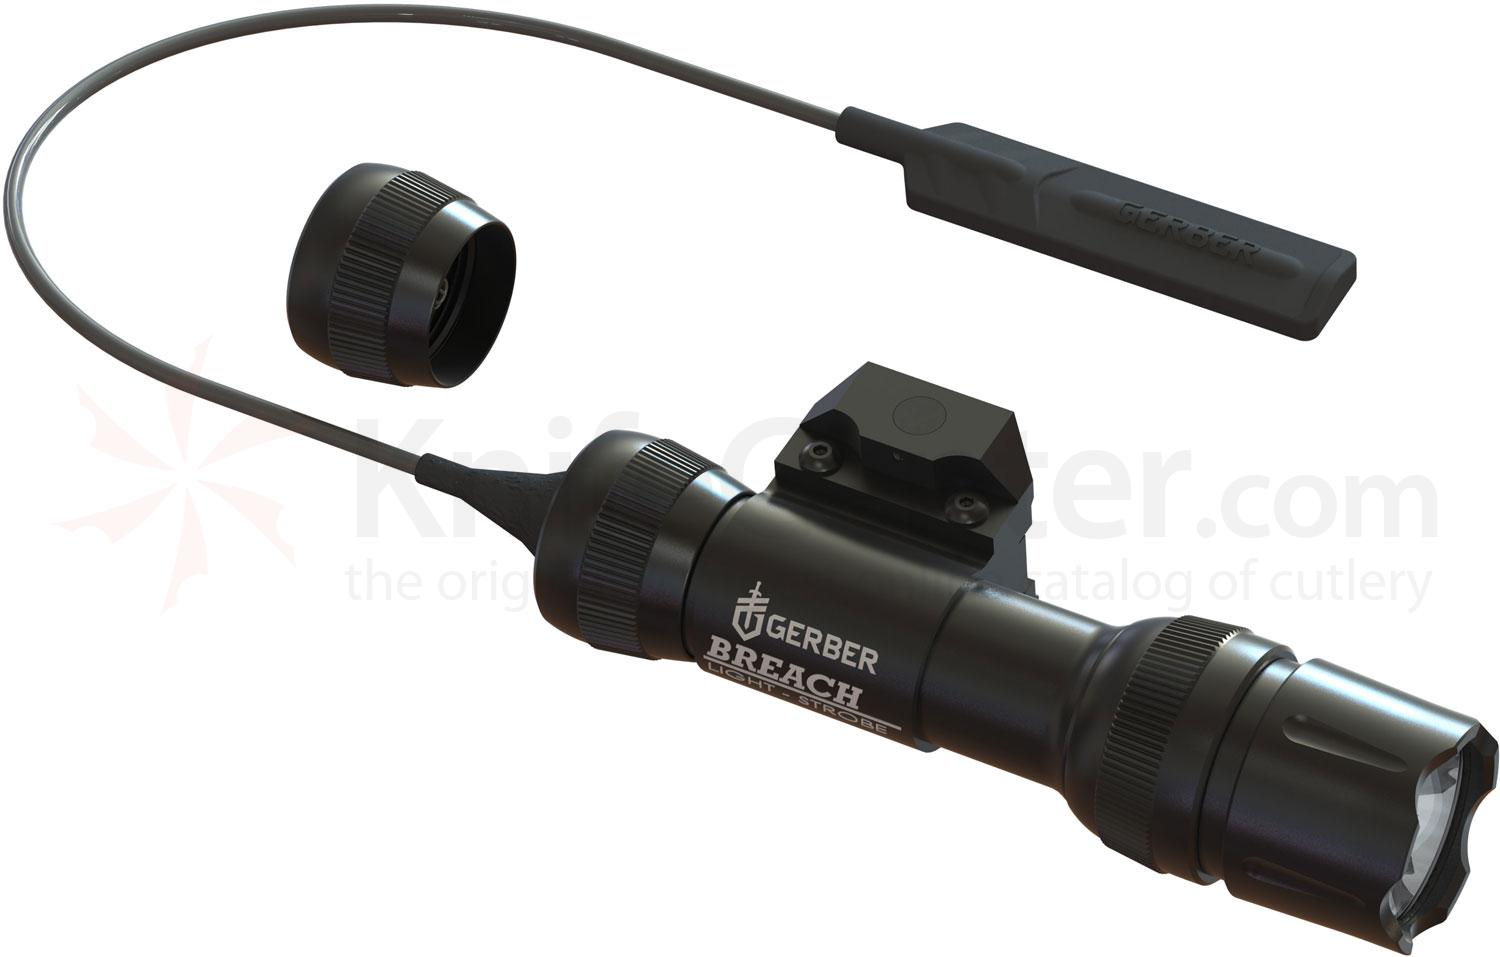 Gerber Tactical Breach Weapons Light, Tailcap and Remote Pressure Switches, 230 Max Lumens